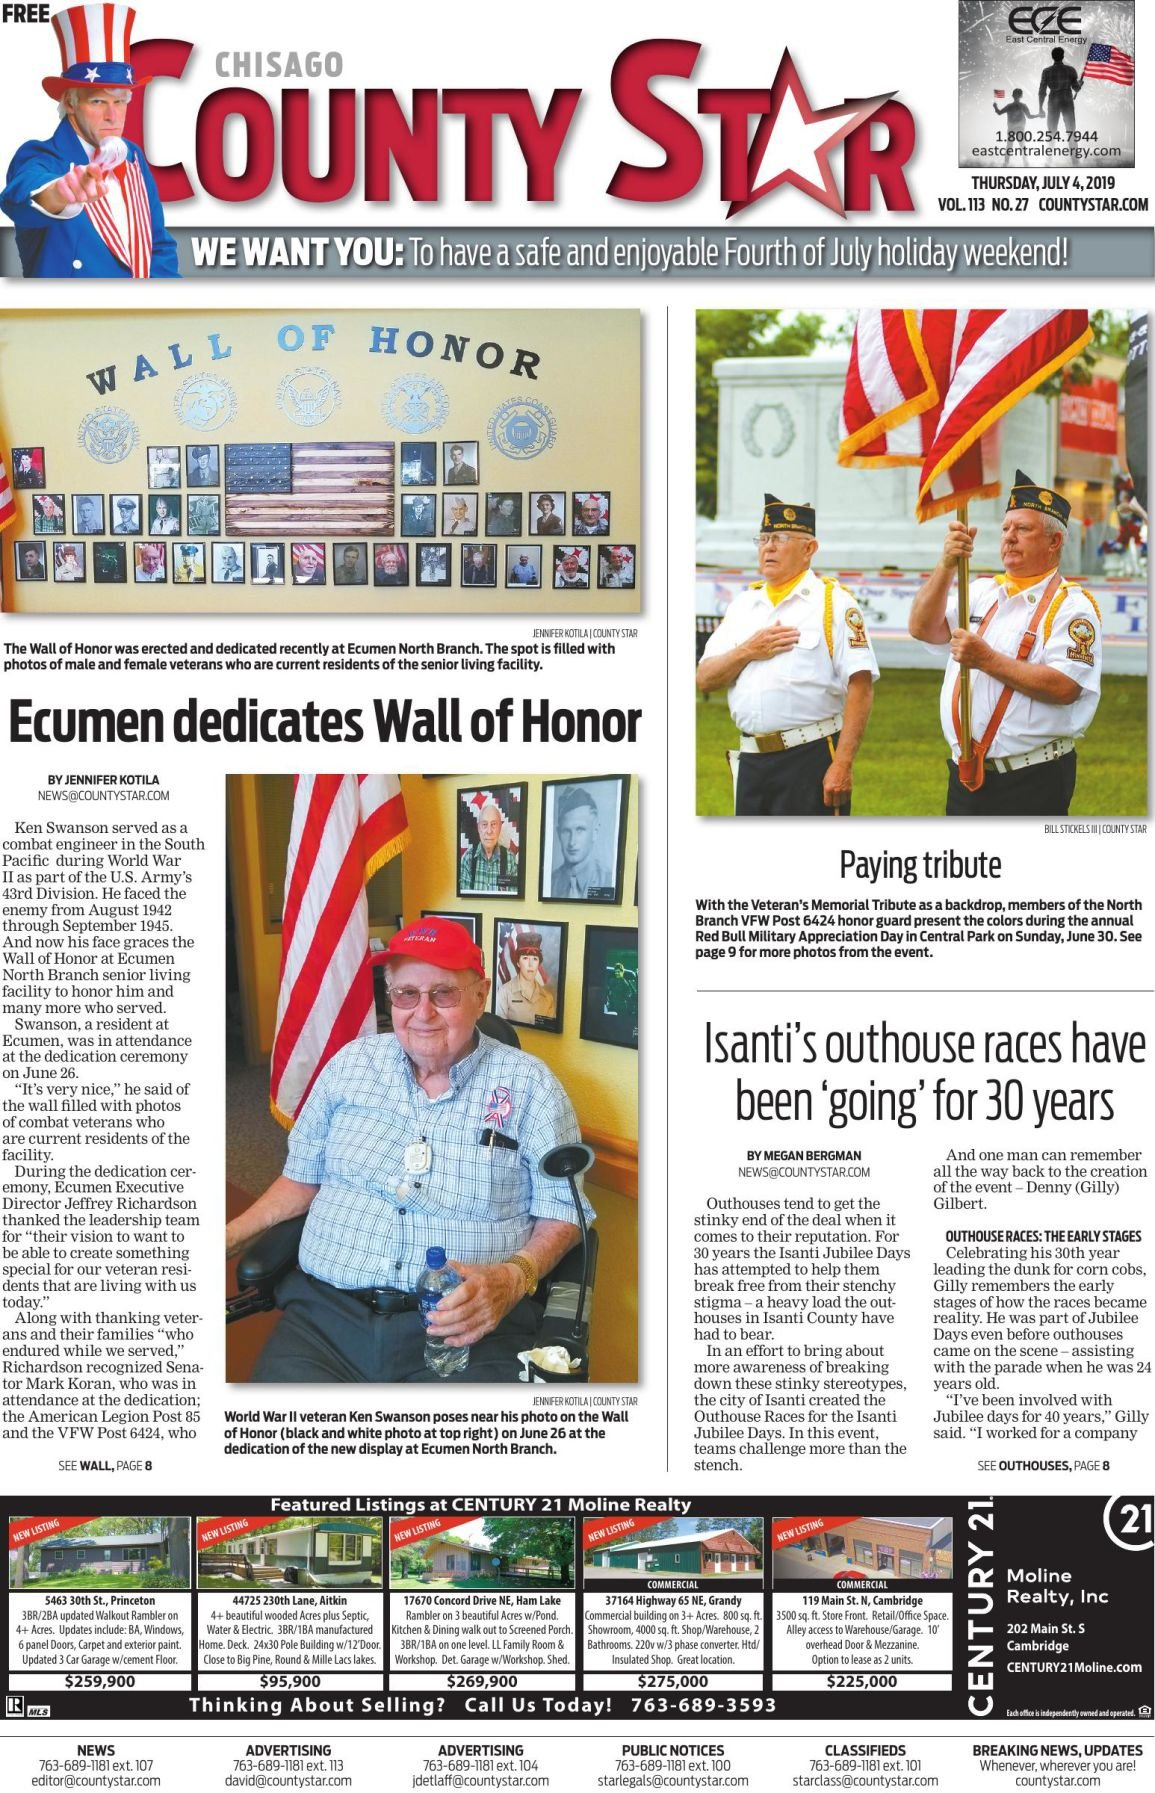 Chisago County Star e-edition July 4, 2019